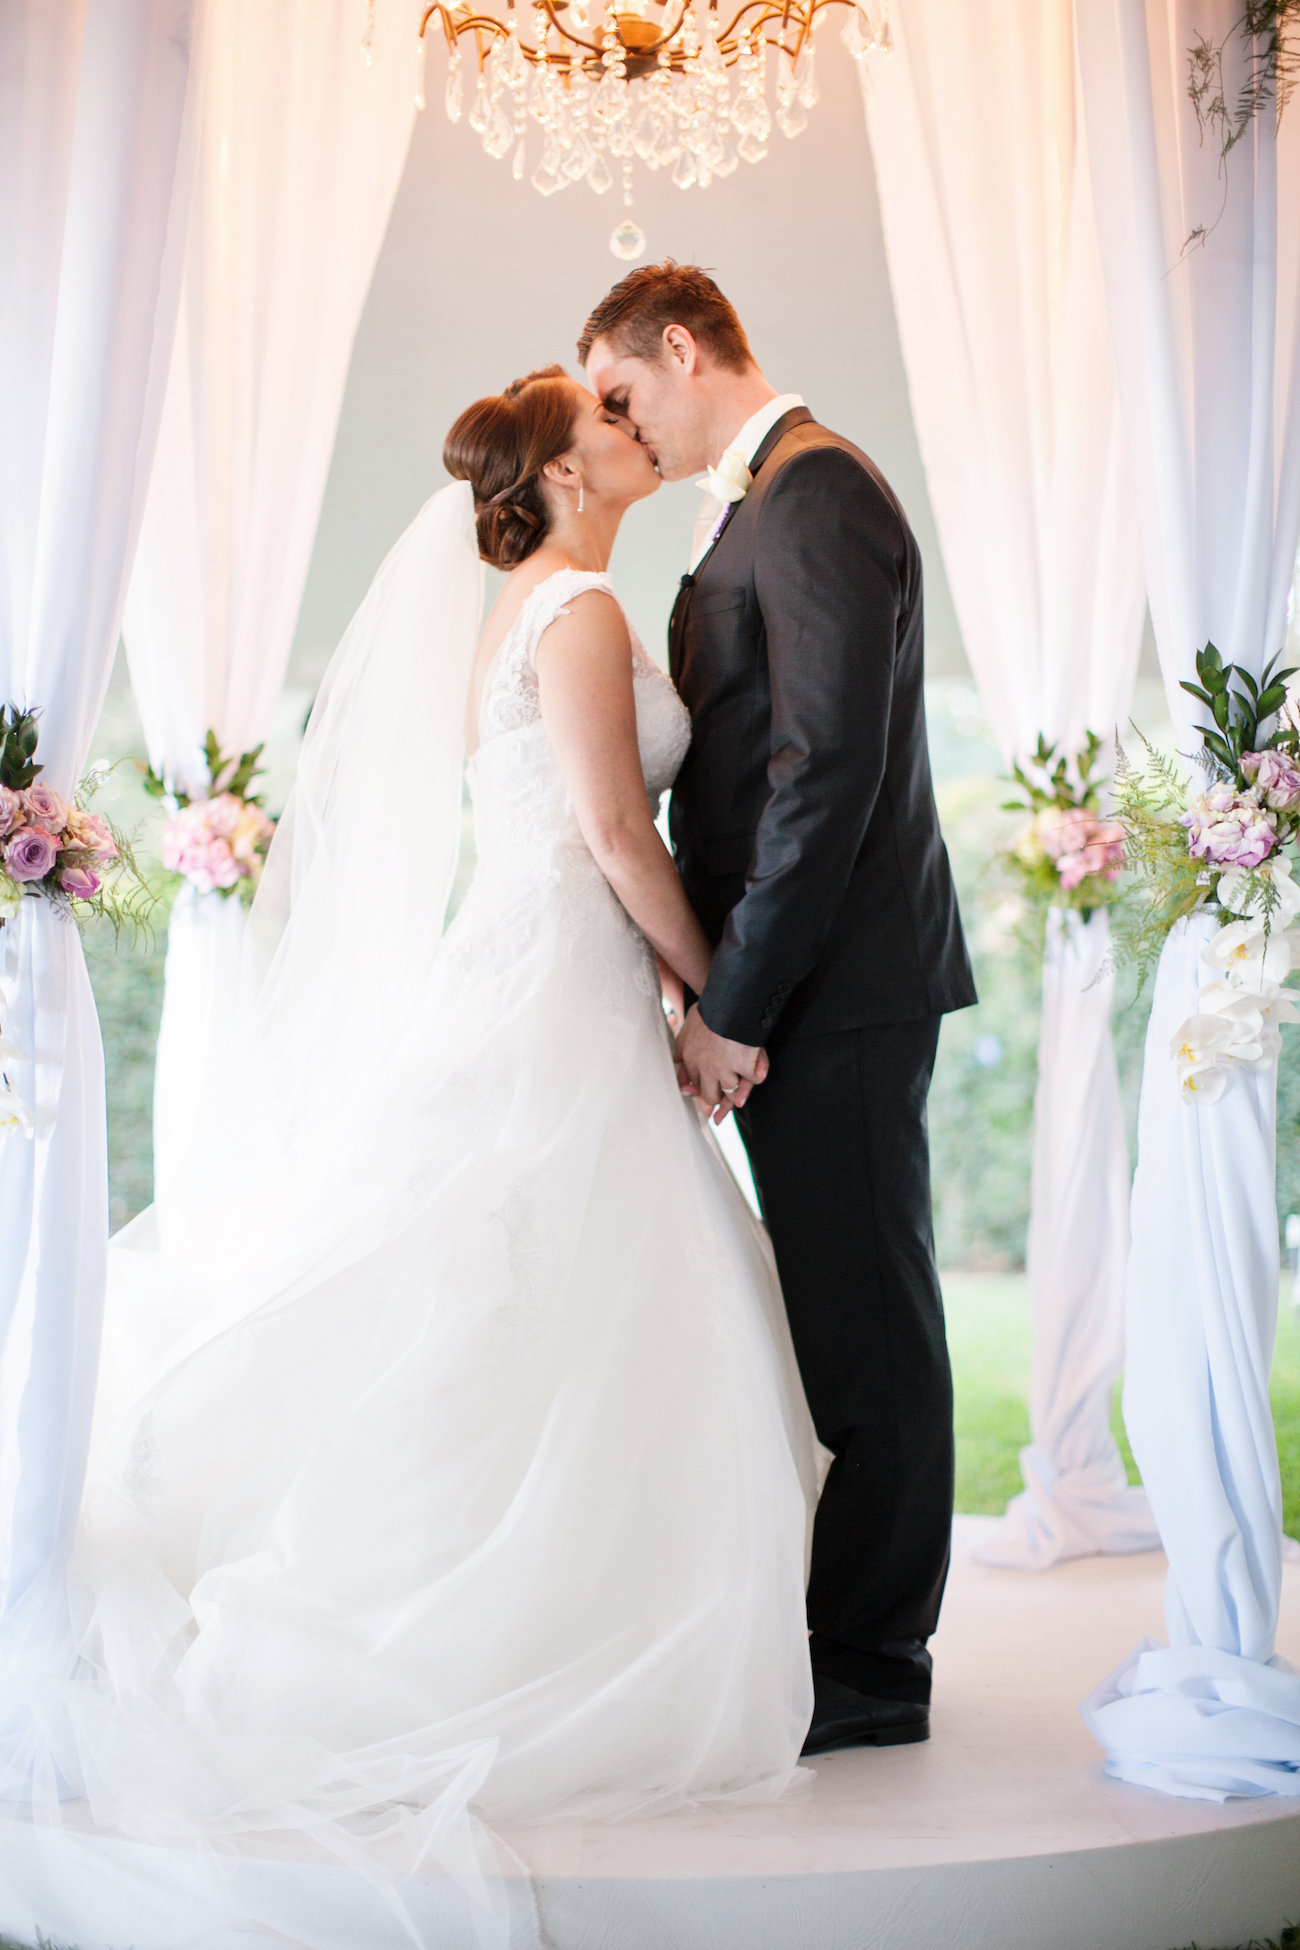 Luxurious Floral Wedding Ceremony | Credit: Tyme Photography & Wedding Concepts